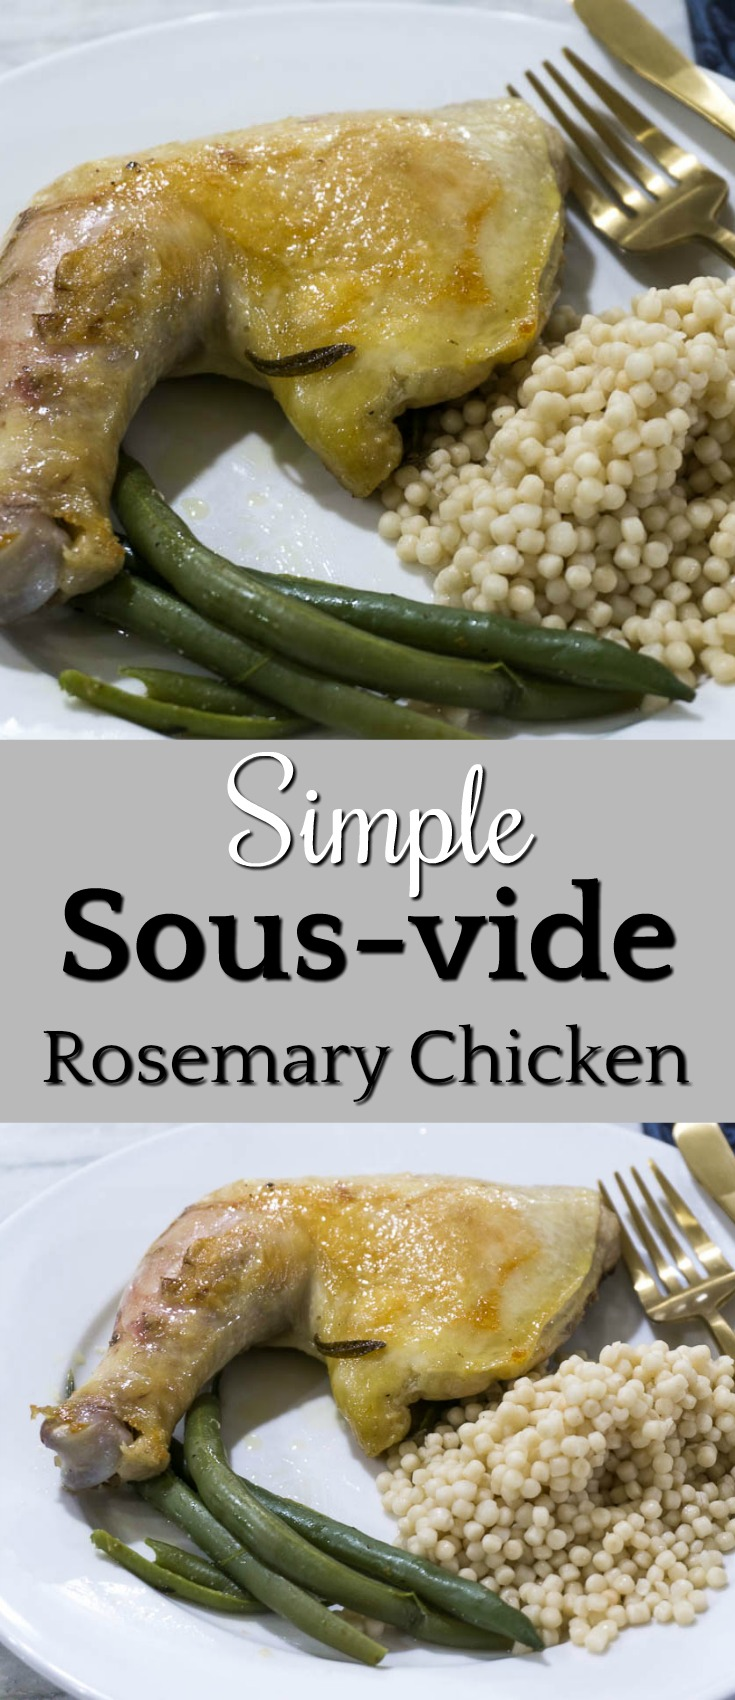 simple sous-vide rosemary chicken